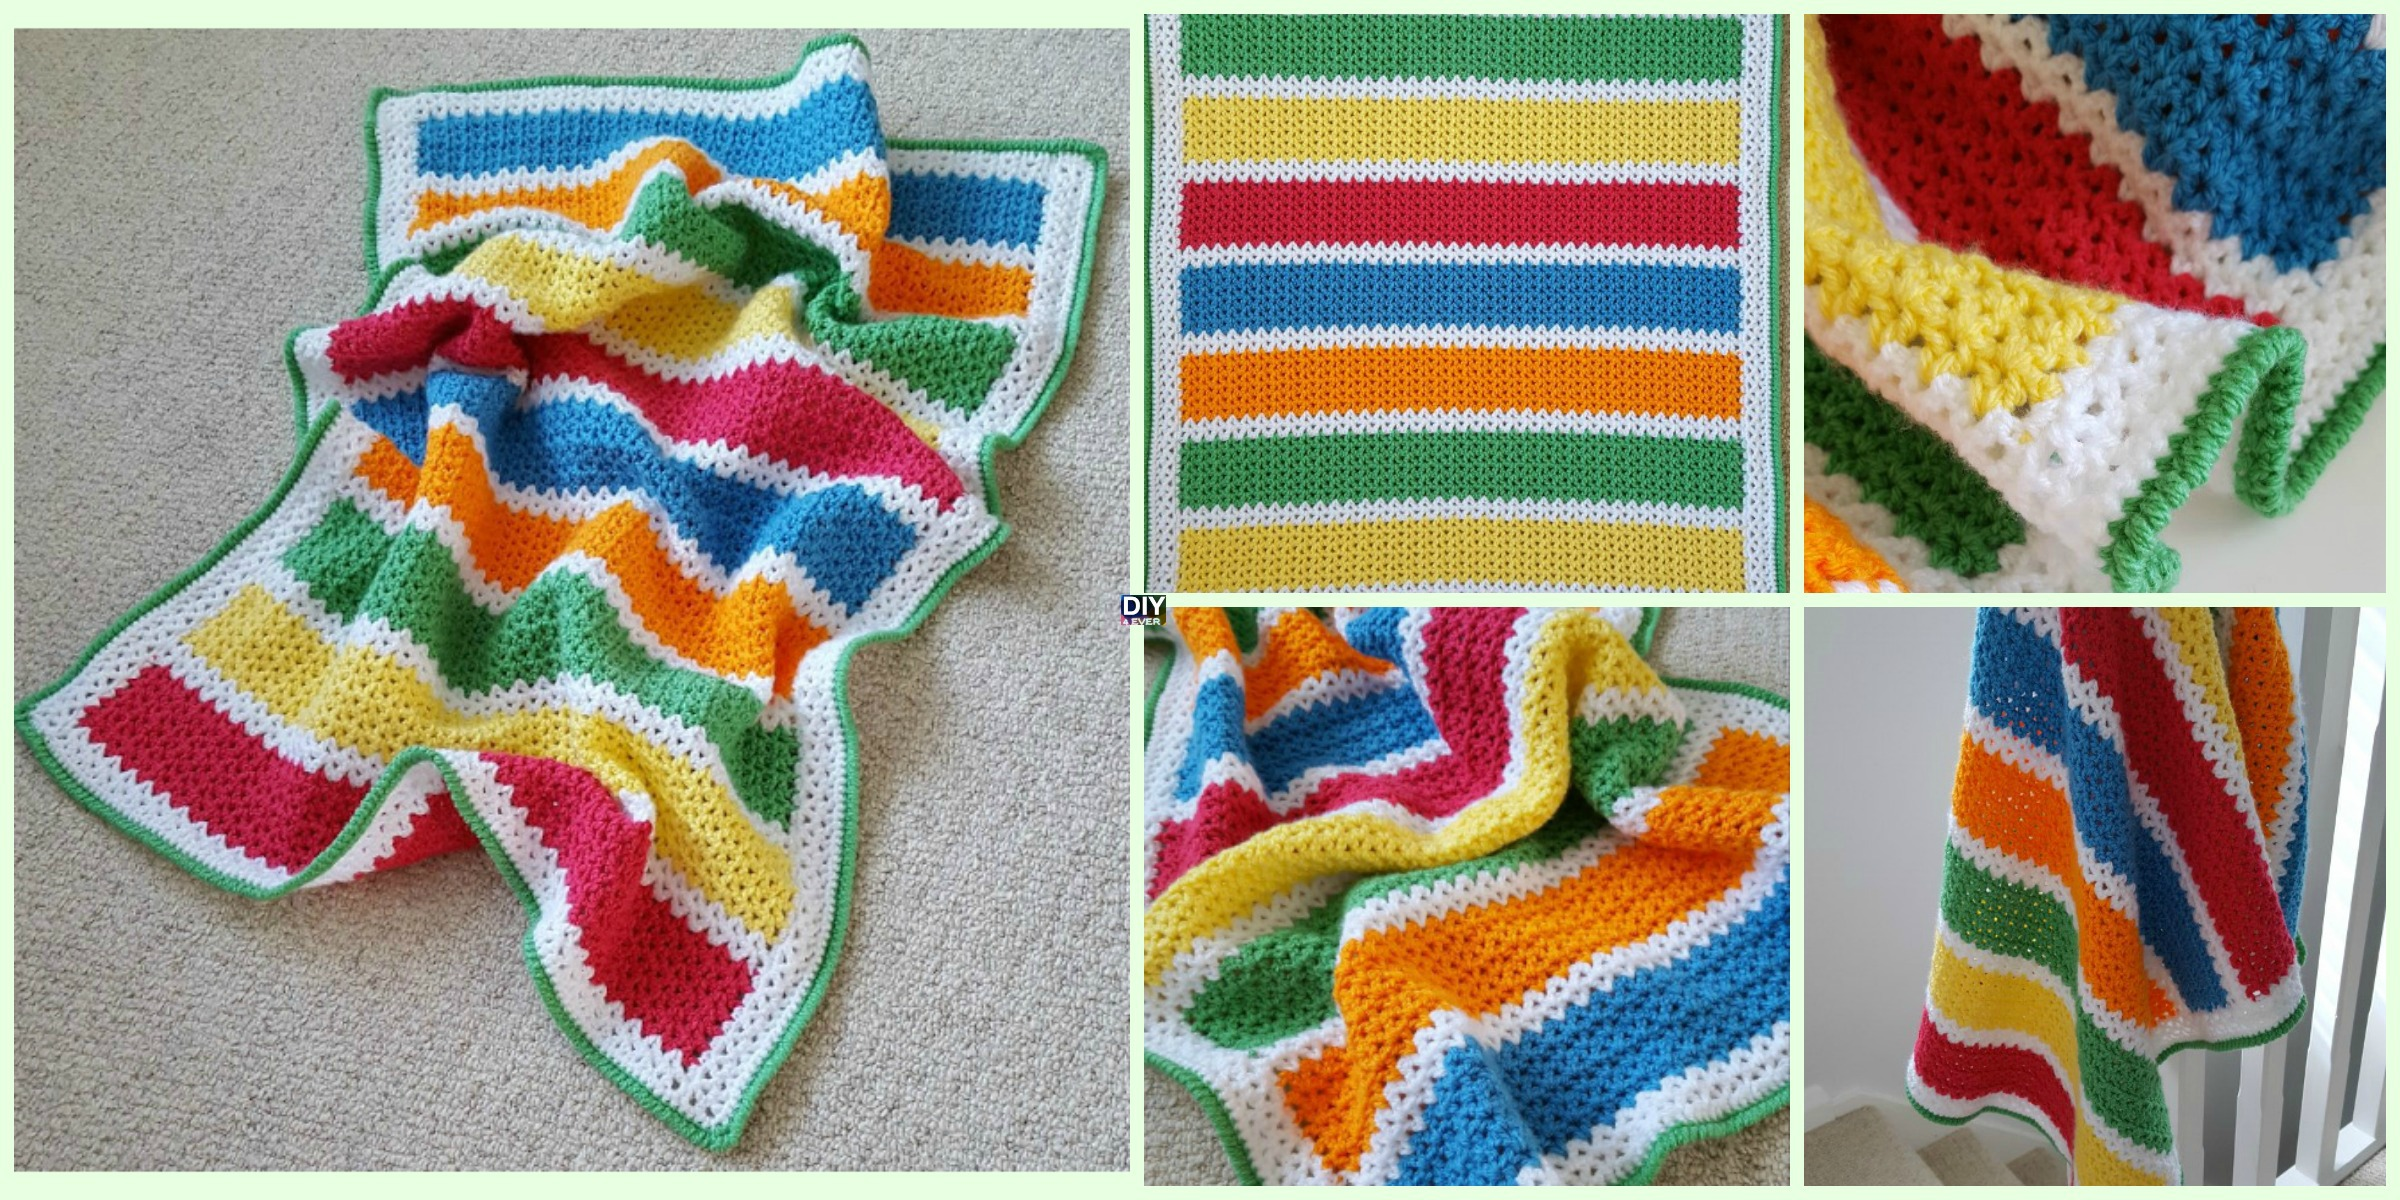 Crochet V Stitch Baby Blanket Free Pattern Diy 4 Ever